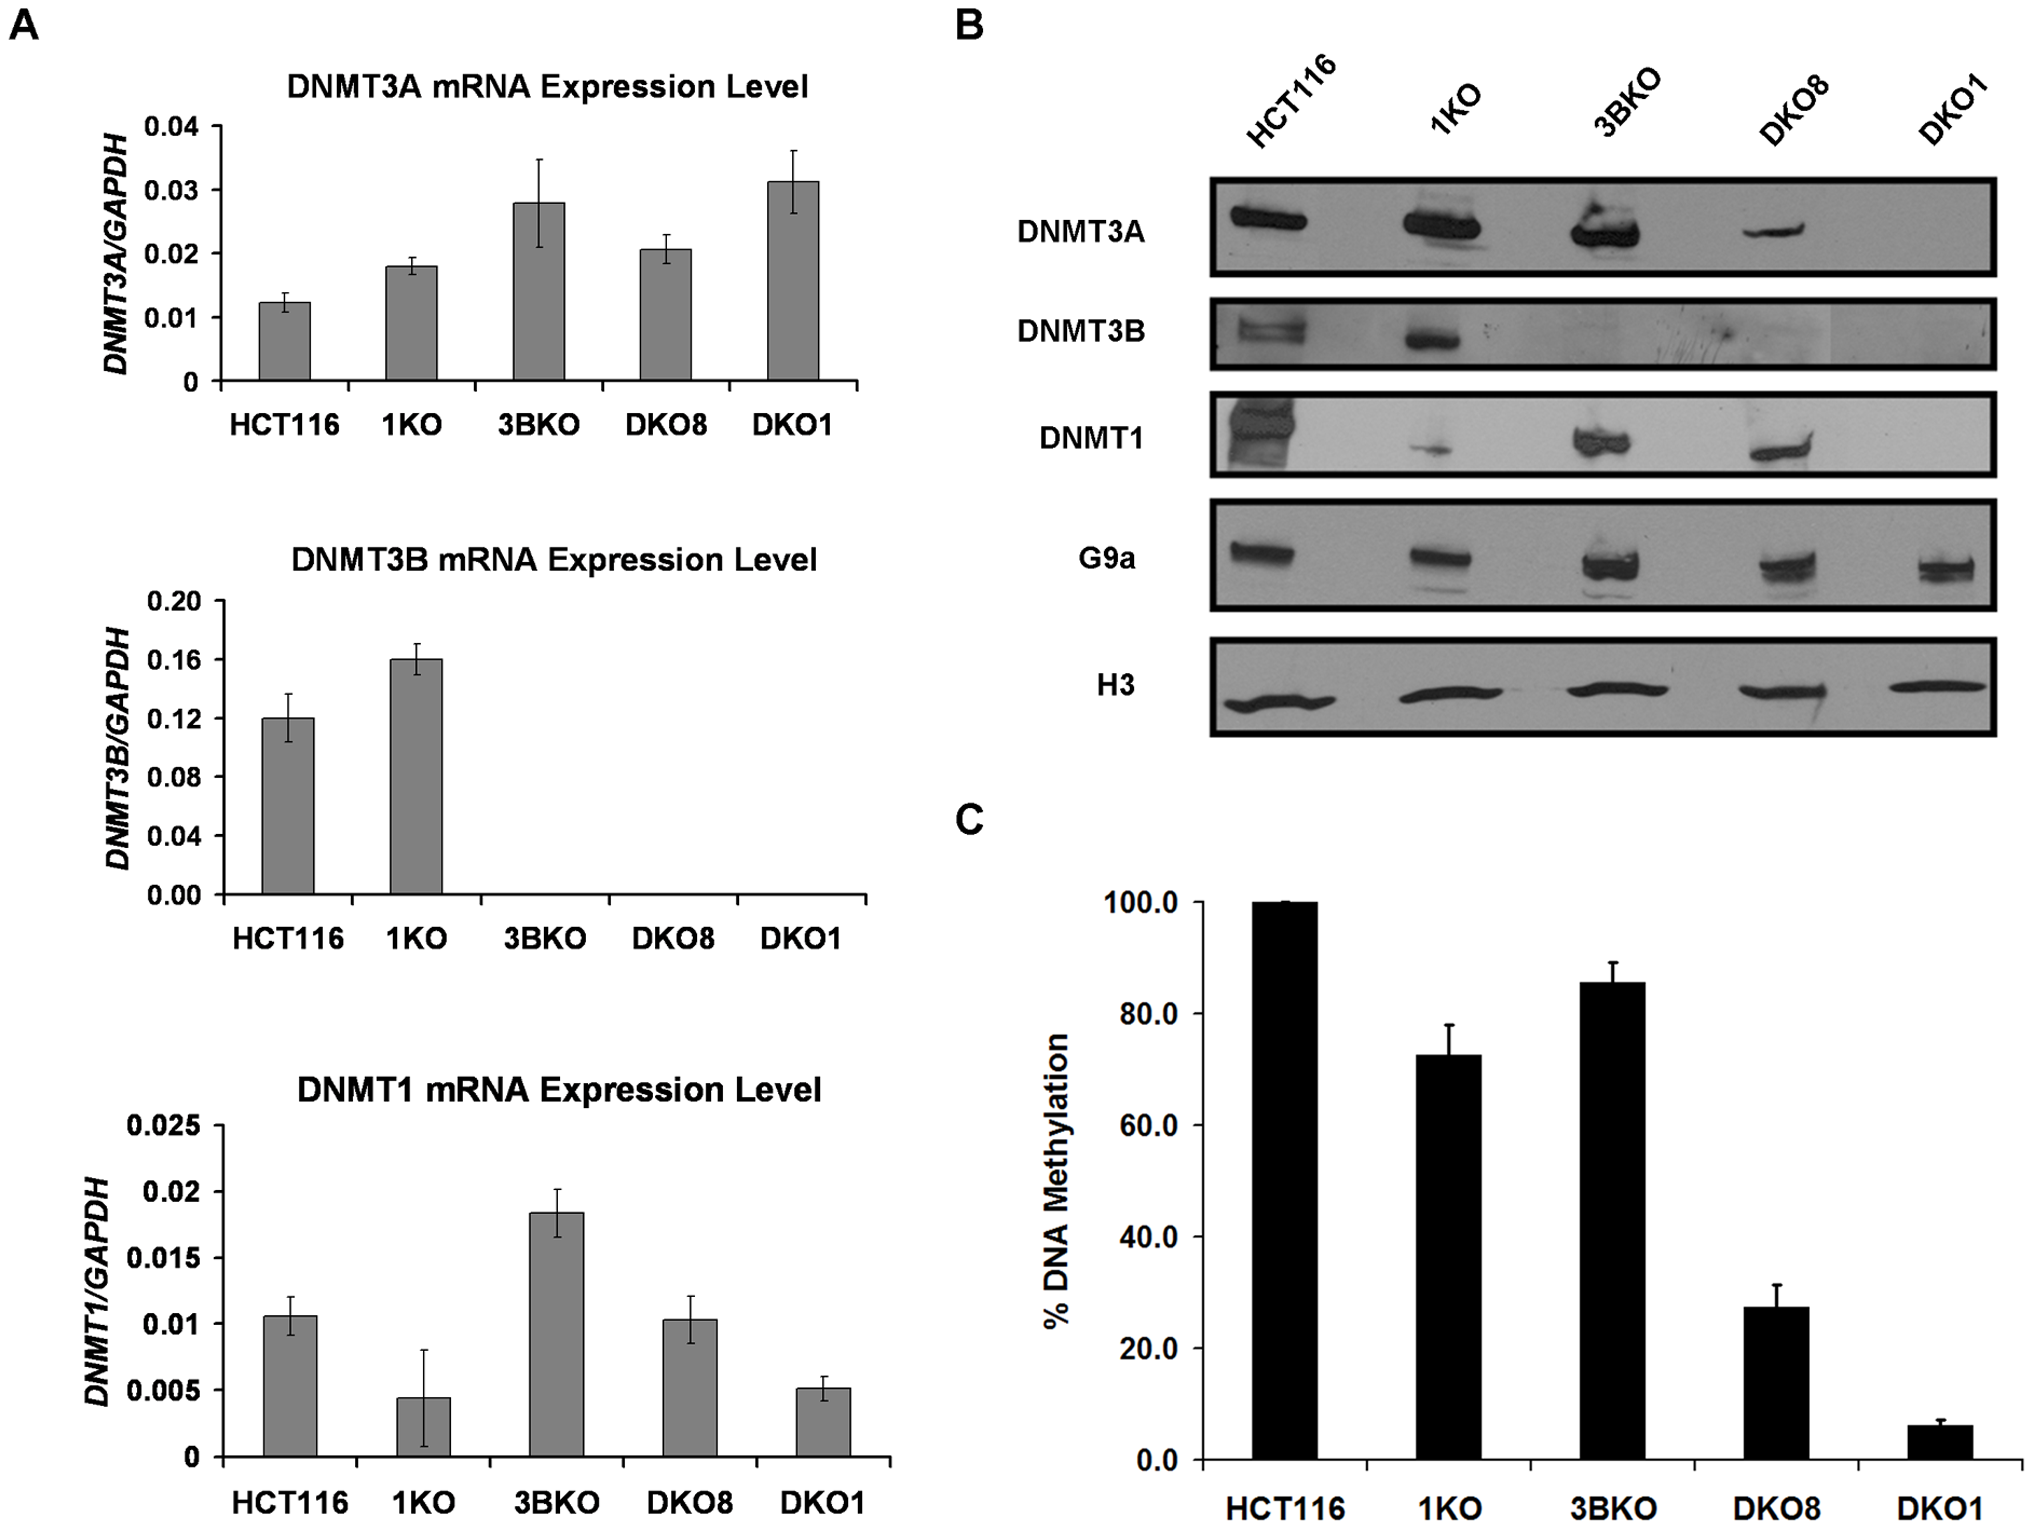 Transcription-independent decrease in DNMT3A protein level in hypomethylated DKO cells that contain severely impaired DNMT1 activity.